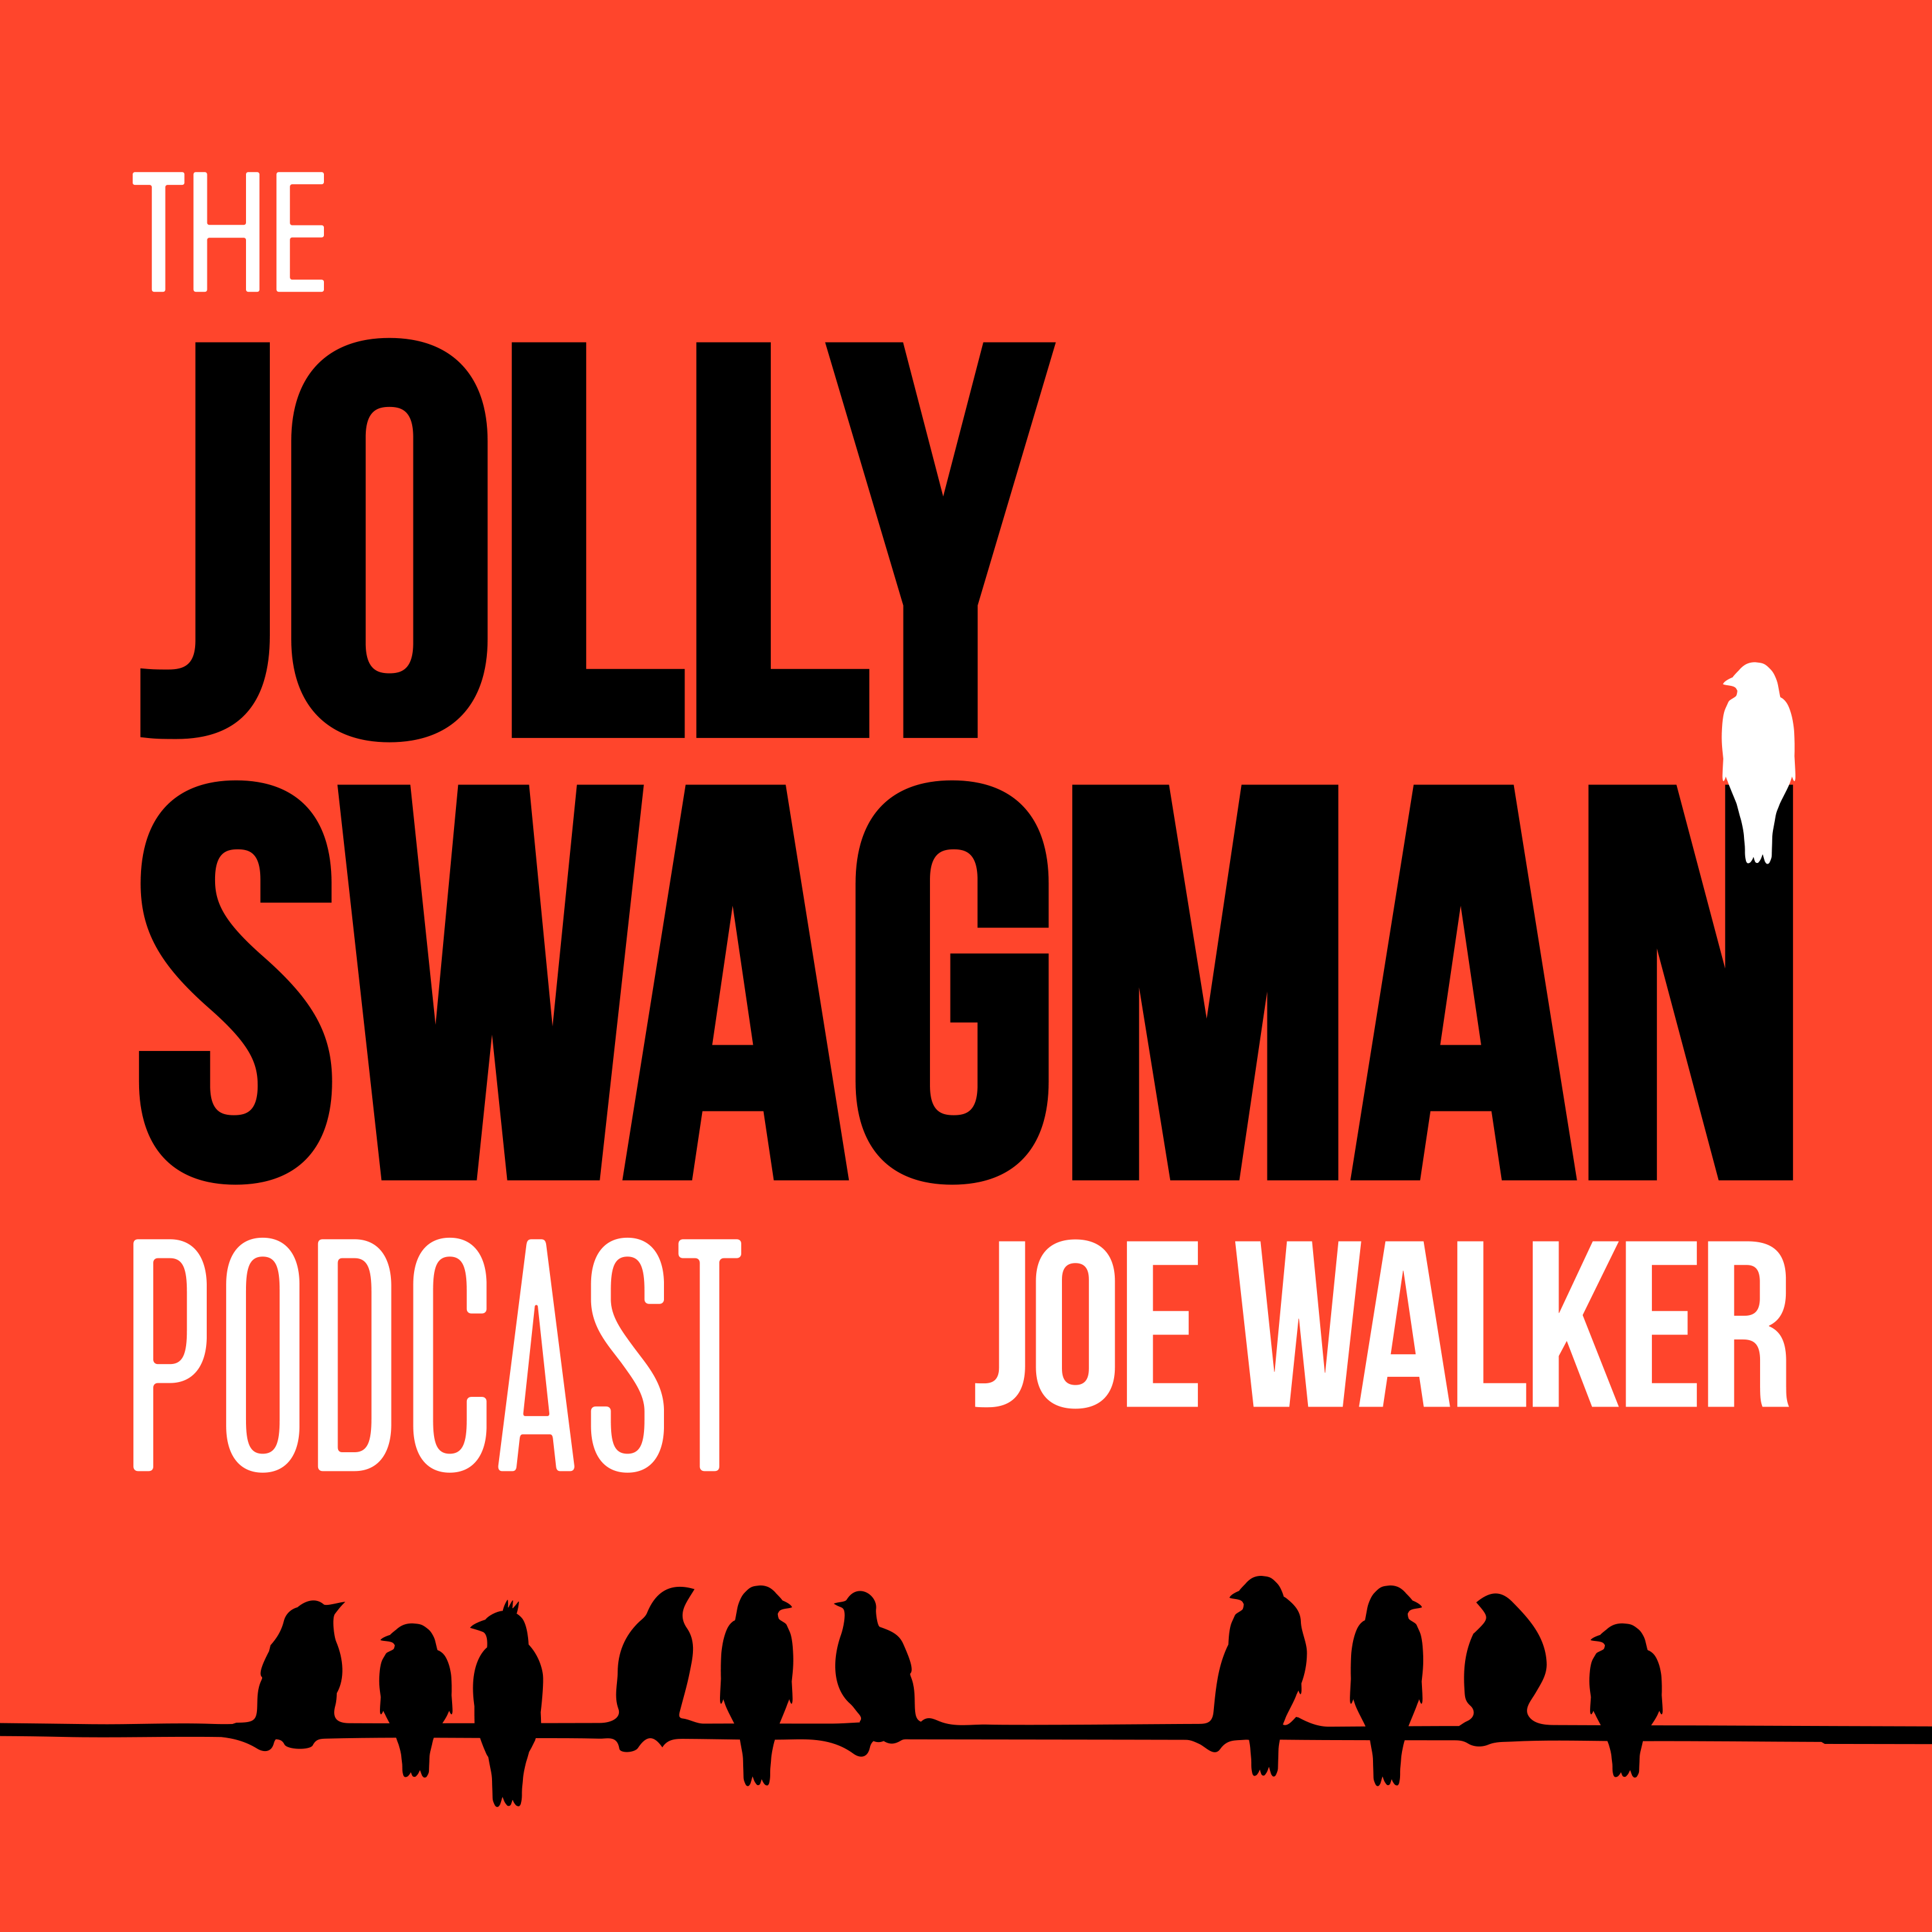 Welcome The Jolly Swagman Podcast Fans!